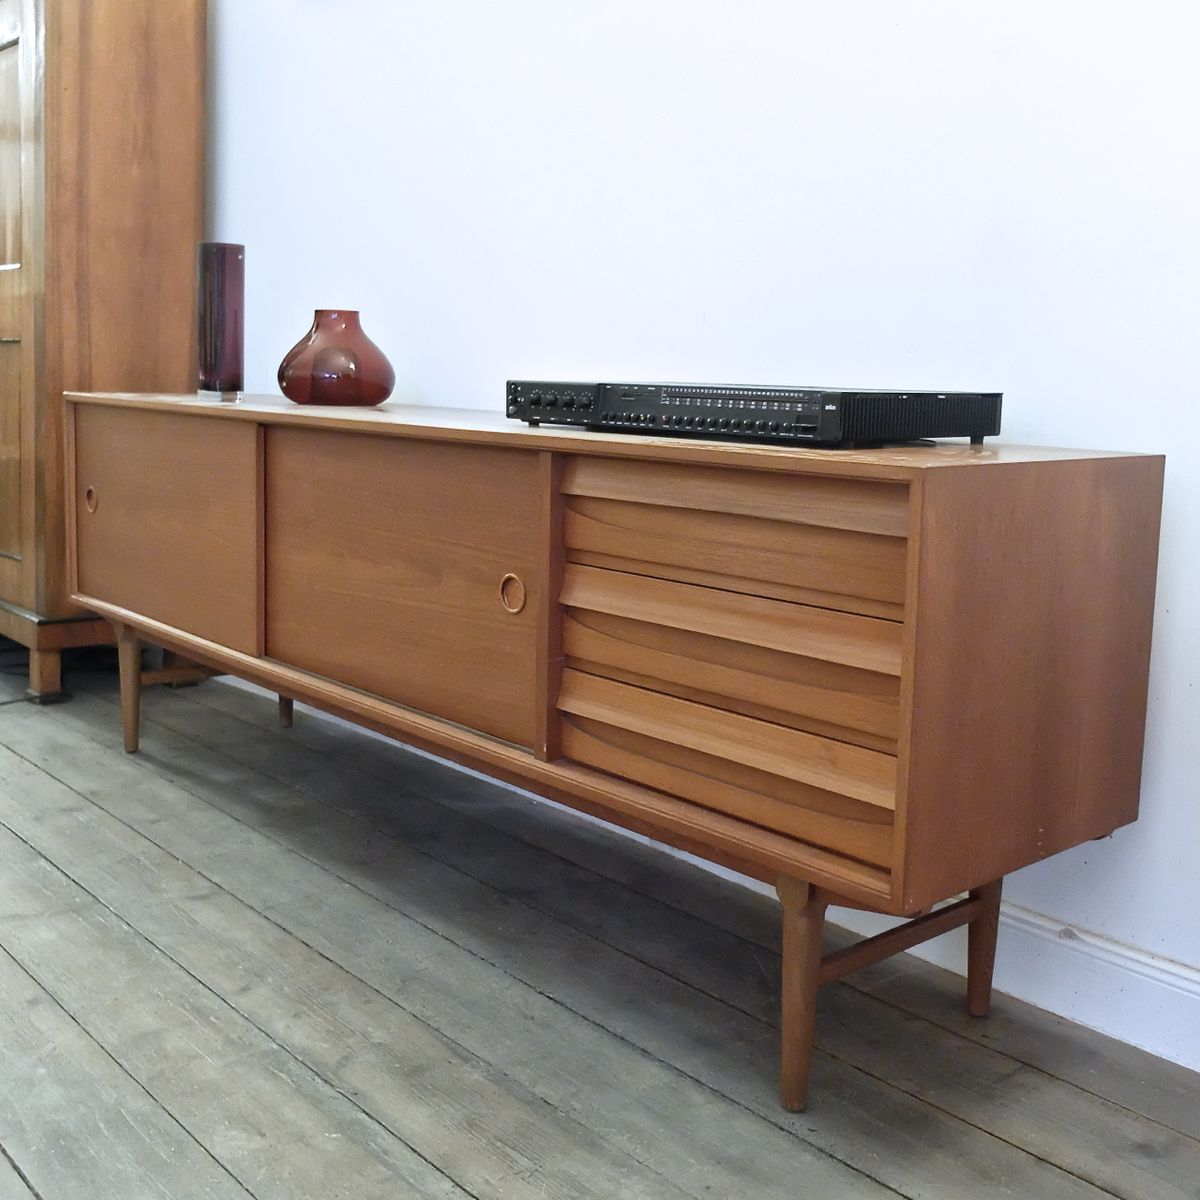 Vintage Sideboard Sliding Doors Vintage Sideboard In Teak With Sliding Doors 1960s For